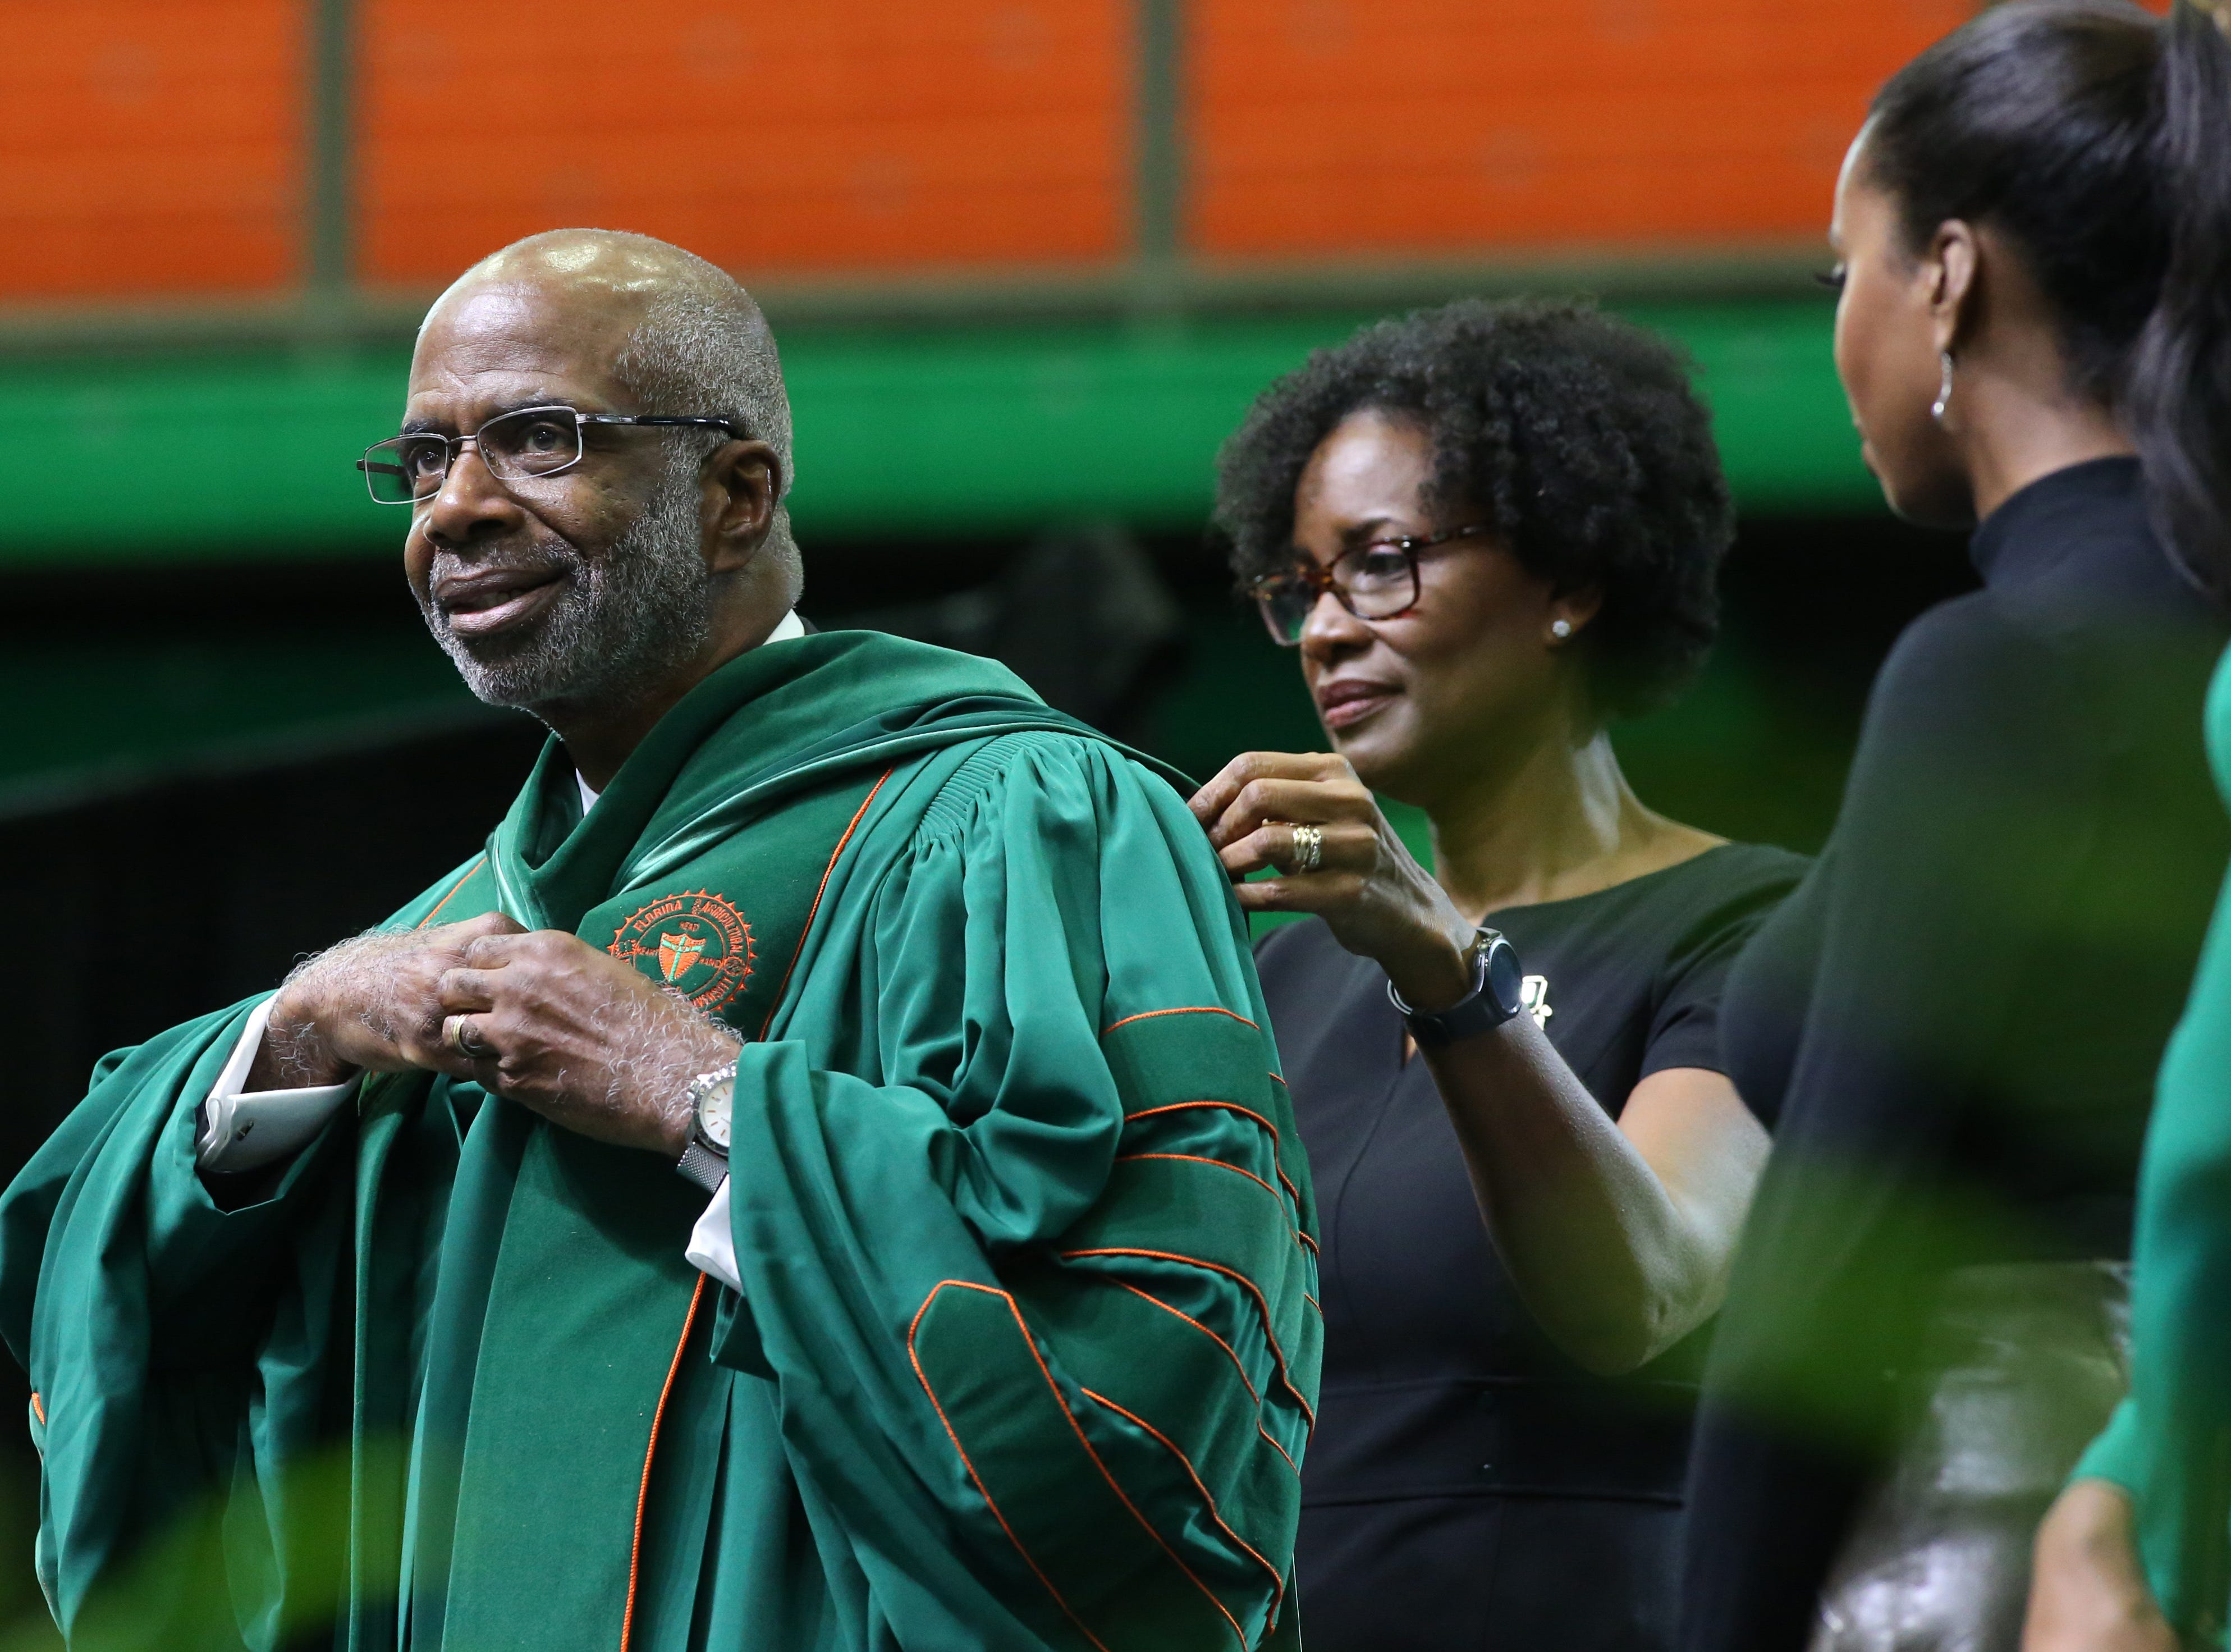 Robinson reigns at last: FAMU holds ceremony for inauguration of its 12th president